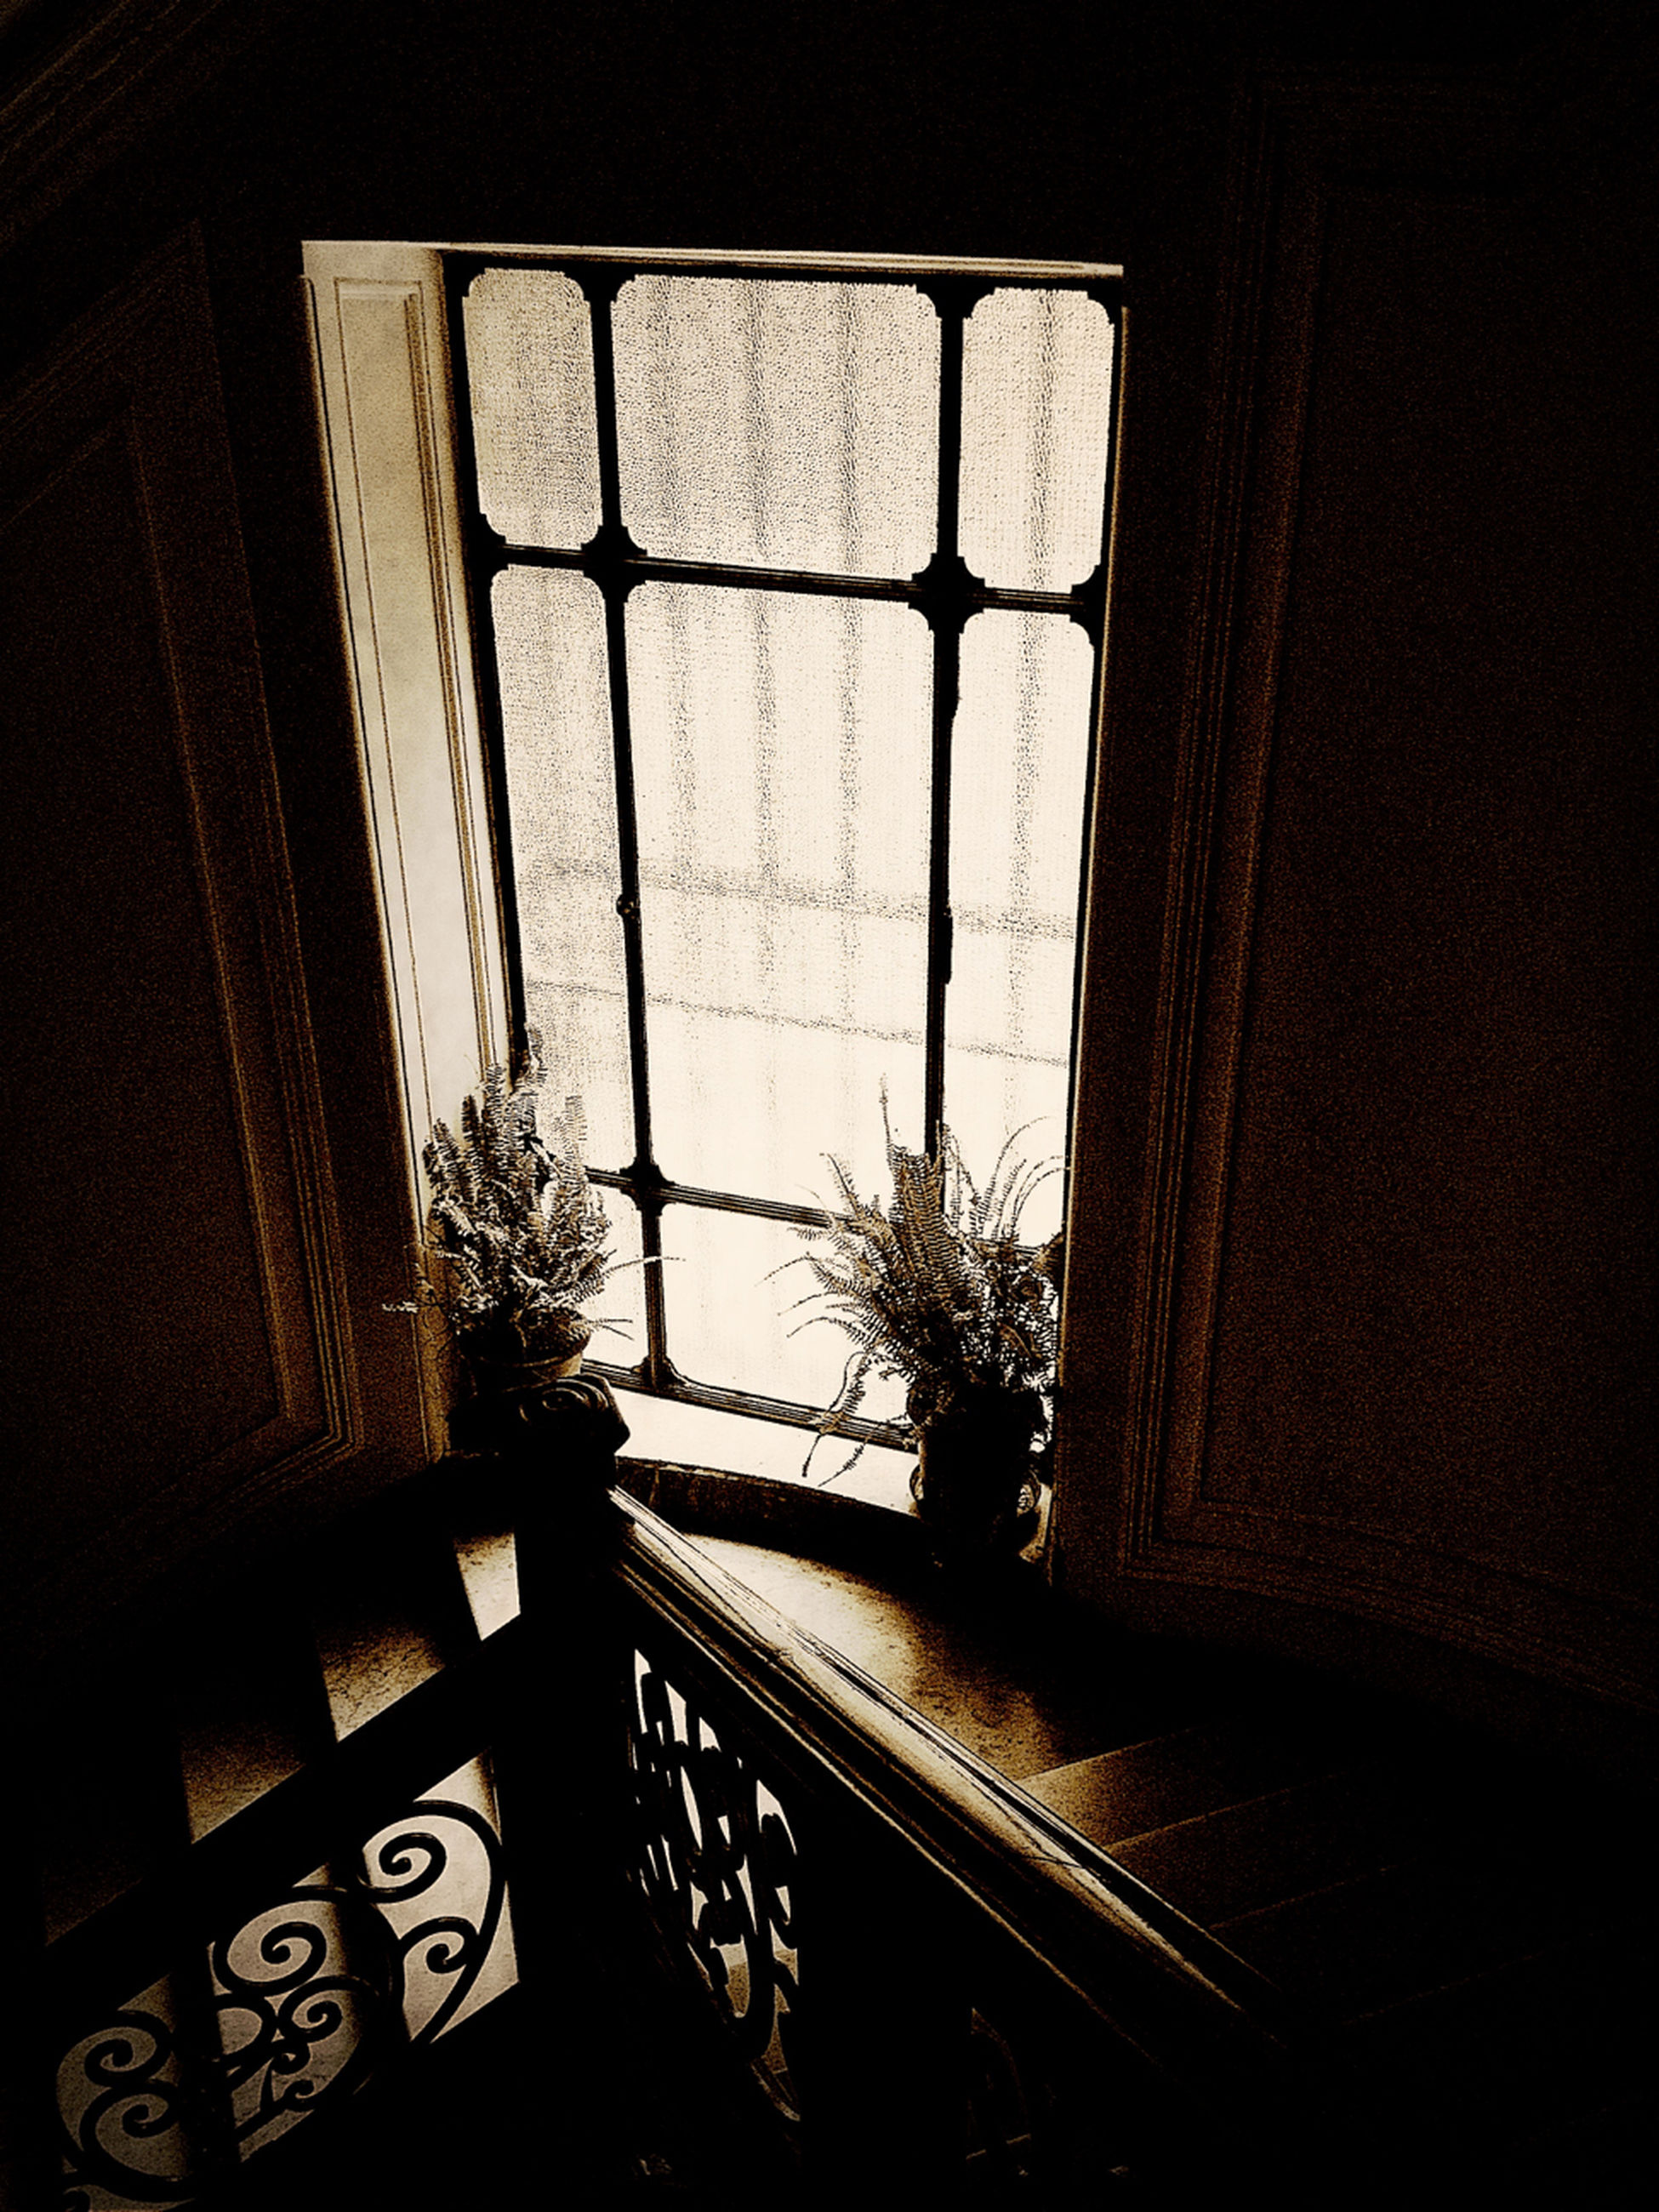 indoors, window, built structure, architecture, house, home interior, wall - building feature, sunlight, no people, shadow, absence, wall, day, closed, potted plant, door, glass - material, entrance, dark, open